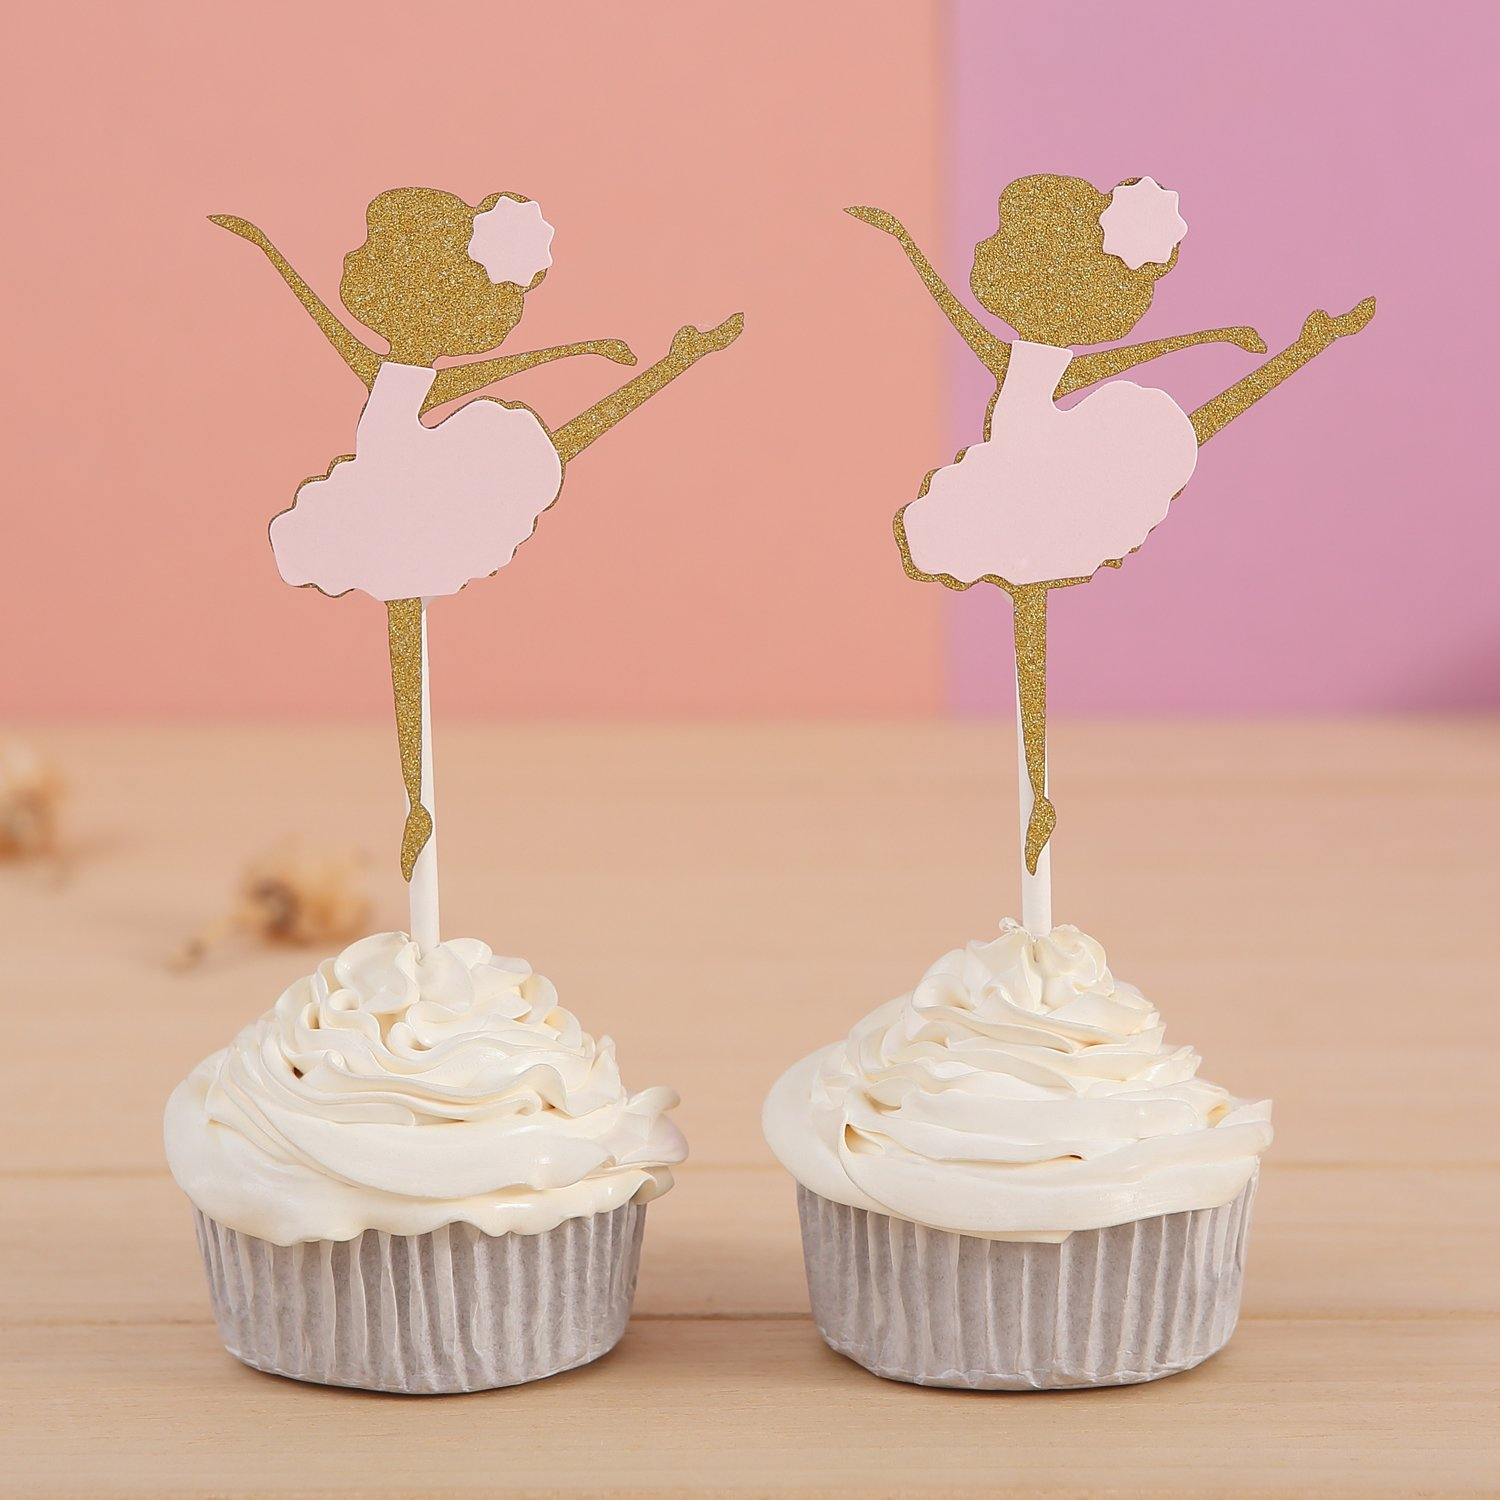 Giuffi 24 CT Gold and Pink Ballerina Cupcake Toppers - by